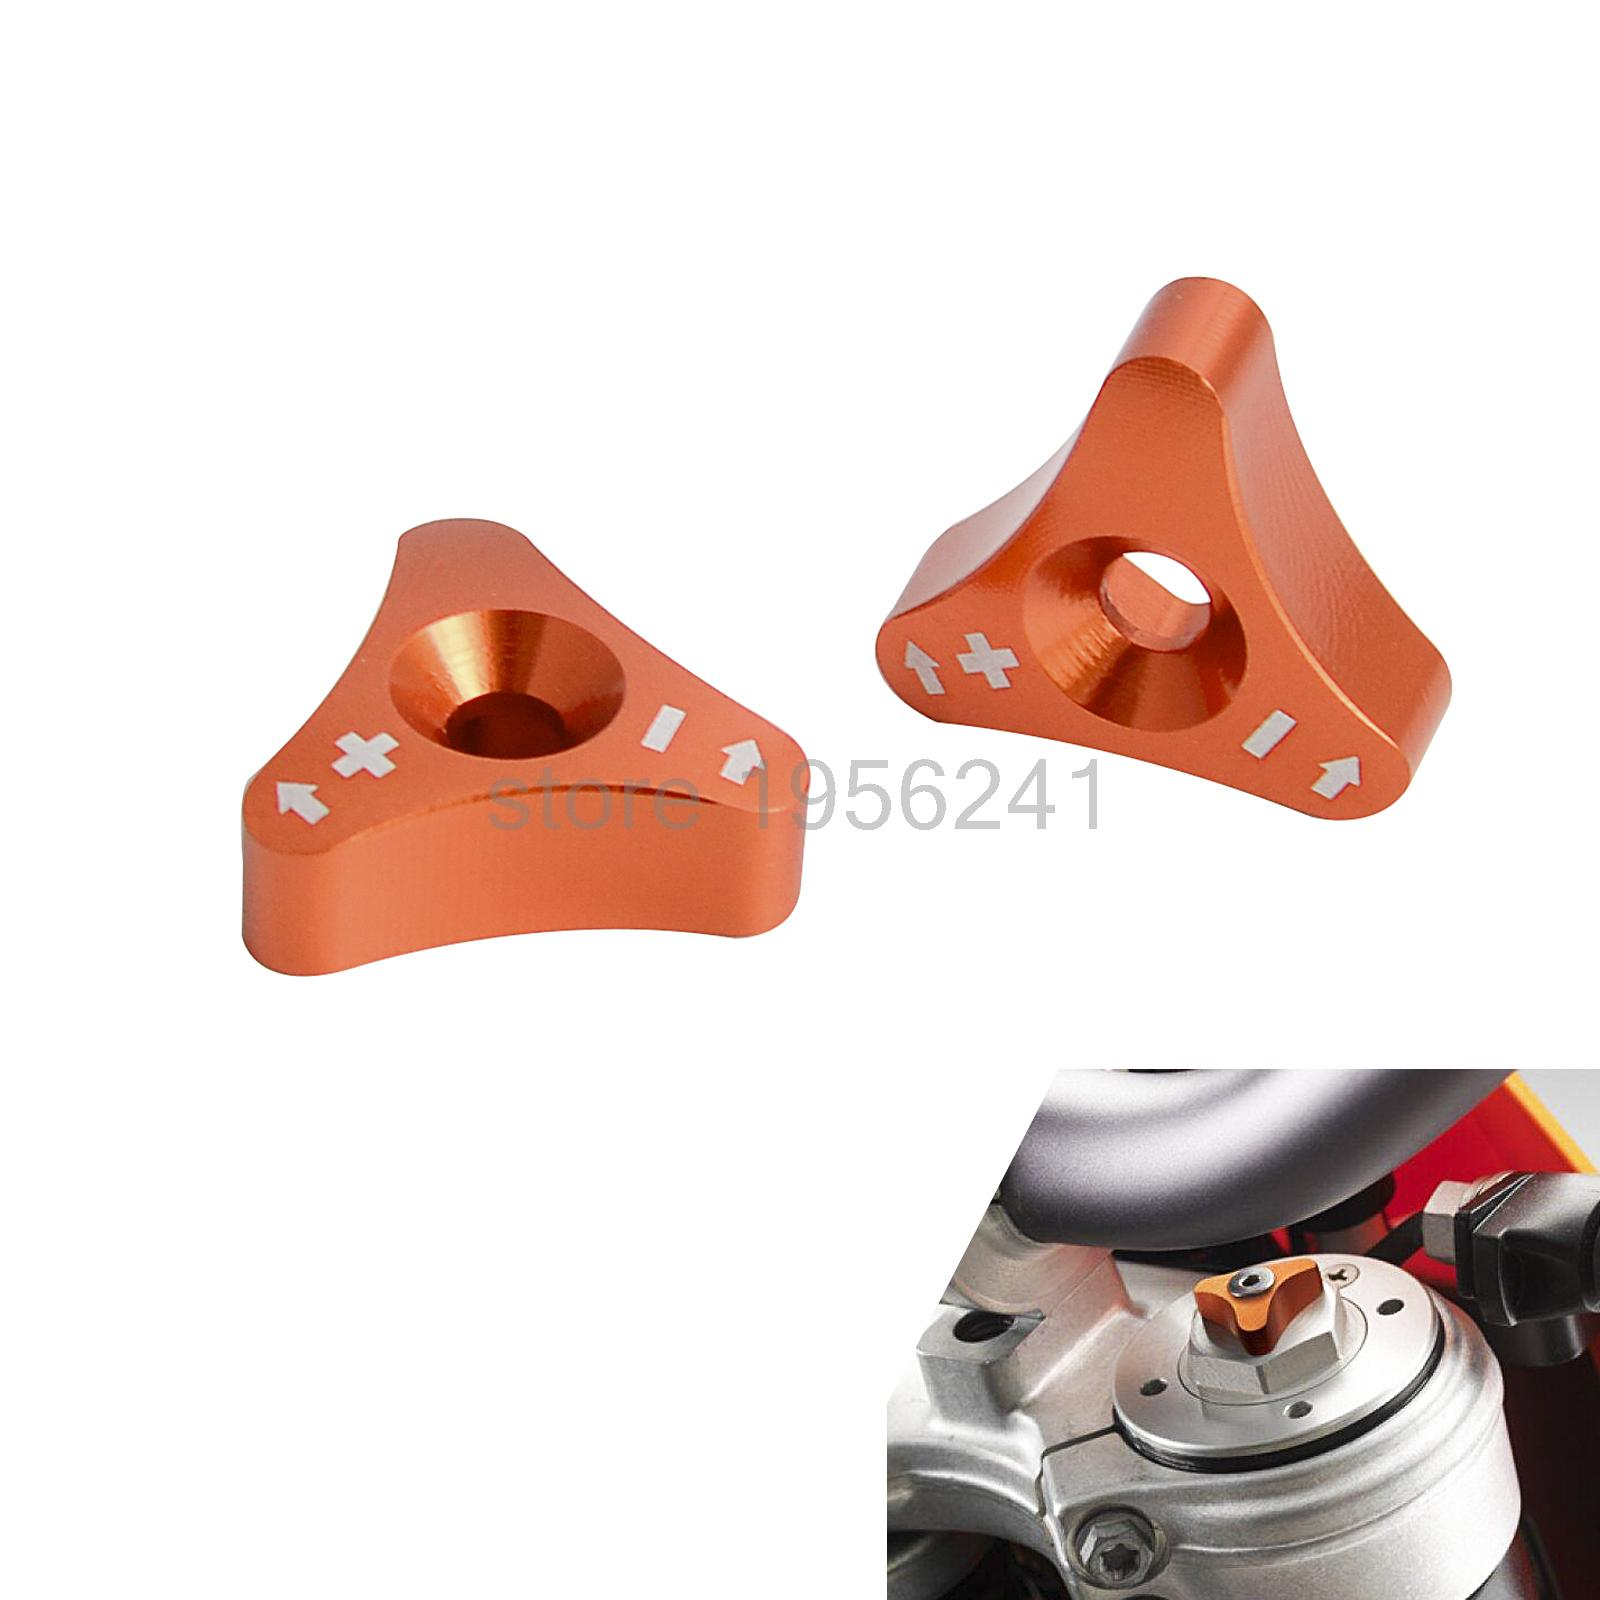 NICECNC Front Shock Absorber SXS Knob Adjuster Bolt For 48mm KTM 125 250 350 530 SX SXF EXC XCW 690 Supermoto SMC Enduro Duke motorcycles adjustable steering stabilizer damper for kawasaki z800 z1000 yamaha tmax500 530 ktm duke 250 990 superduke 690 duke